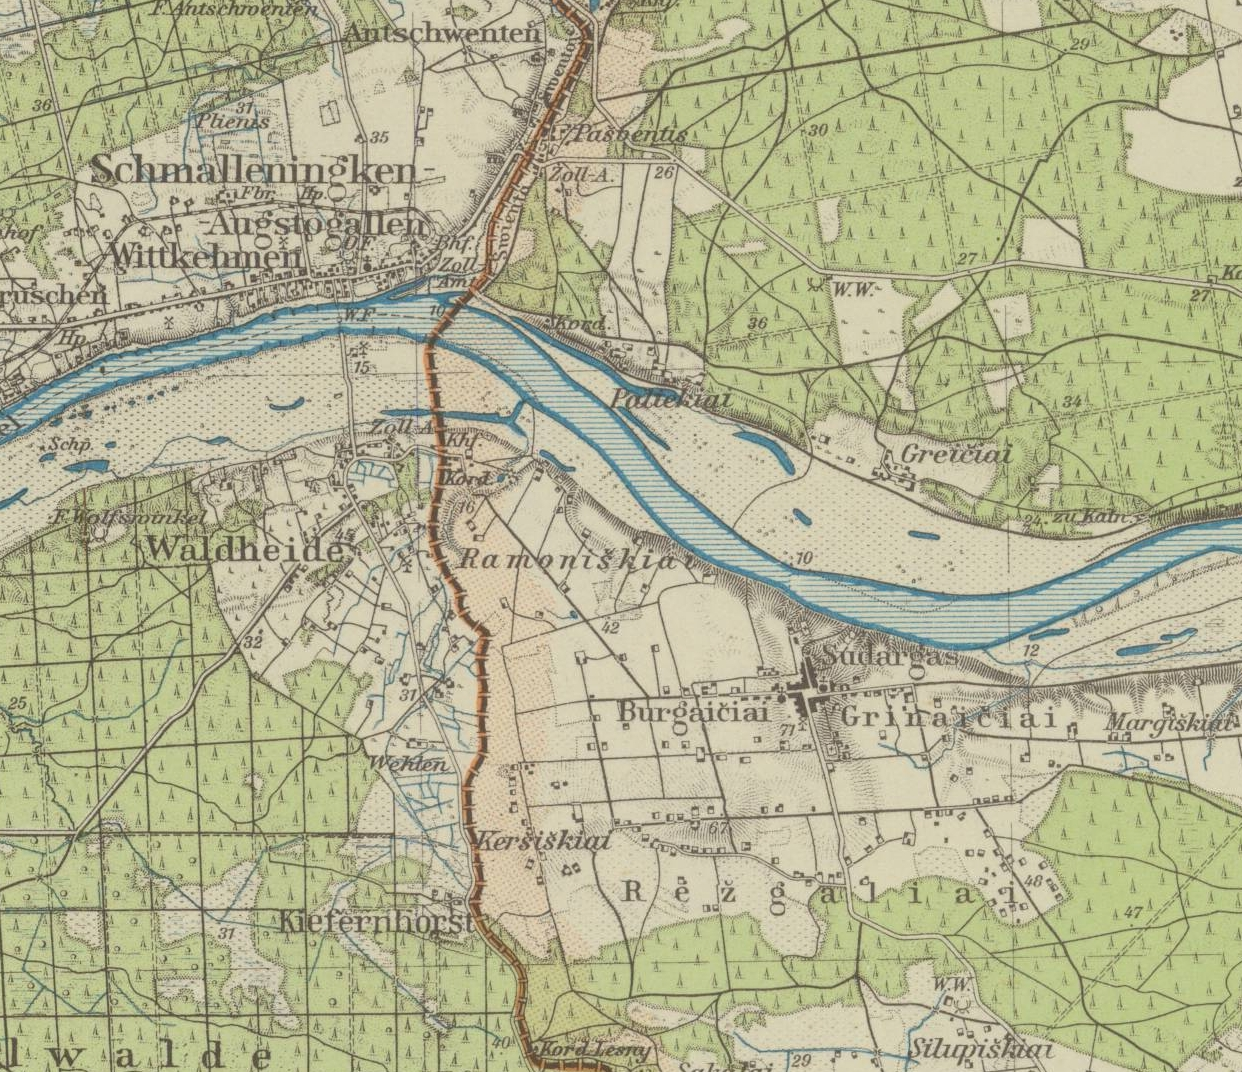 Close up of map showing river and boundary